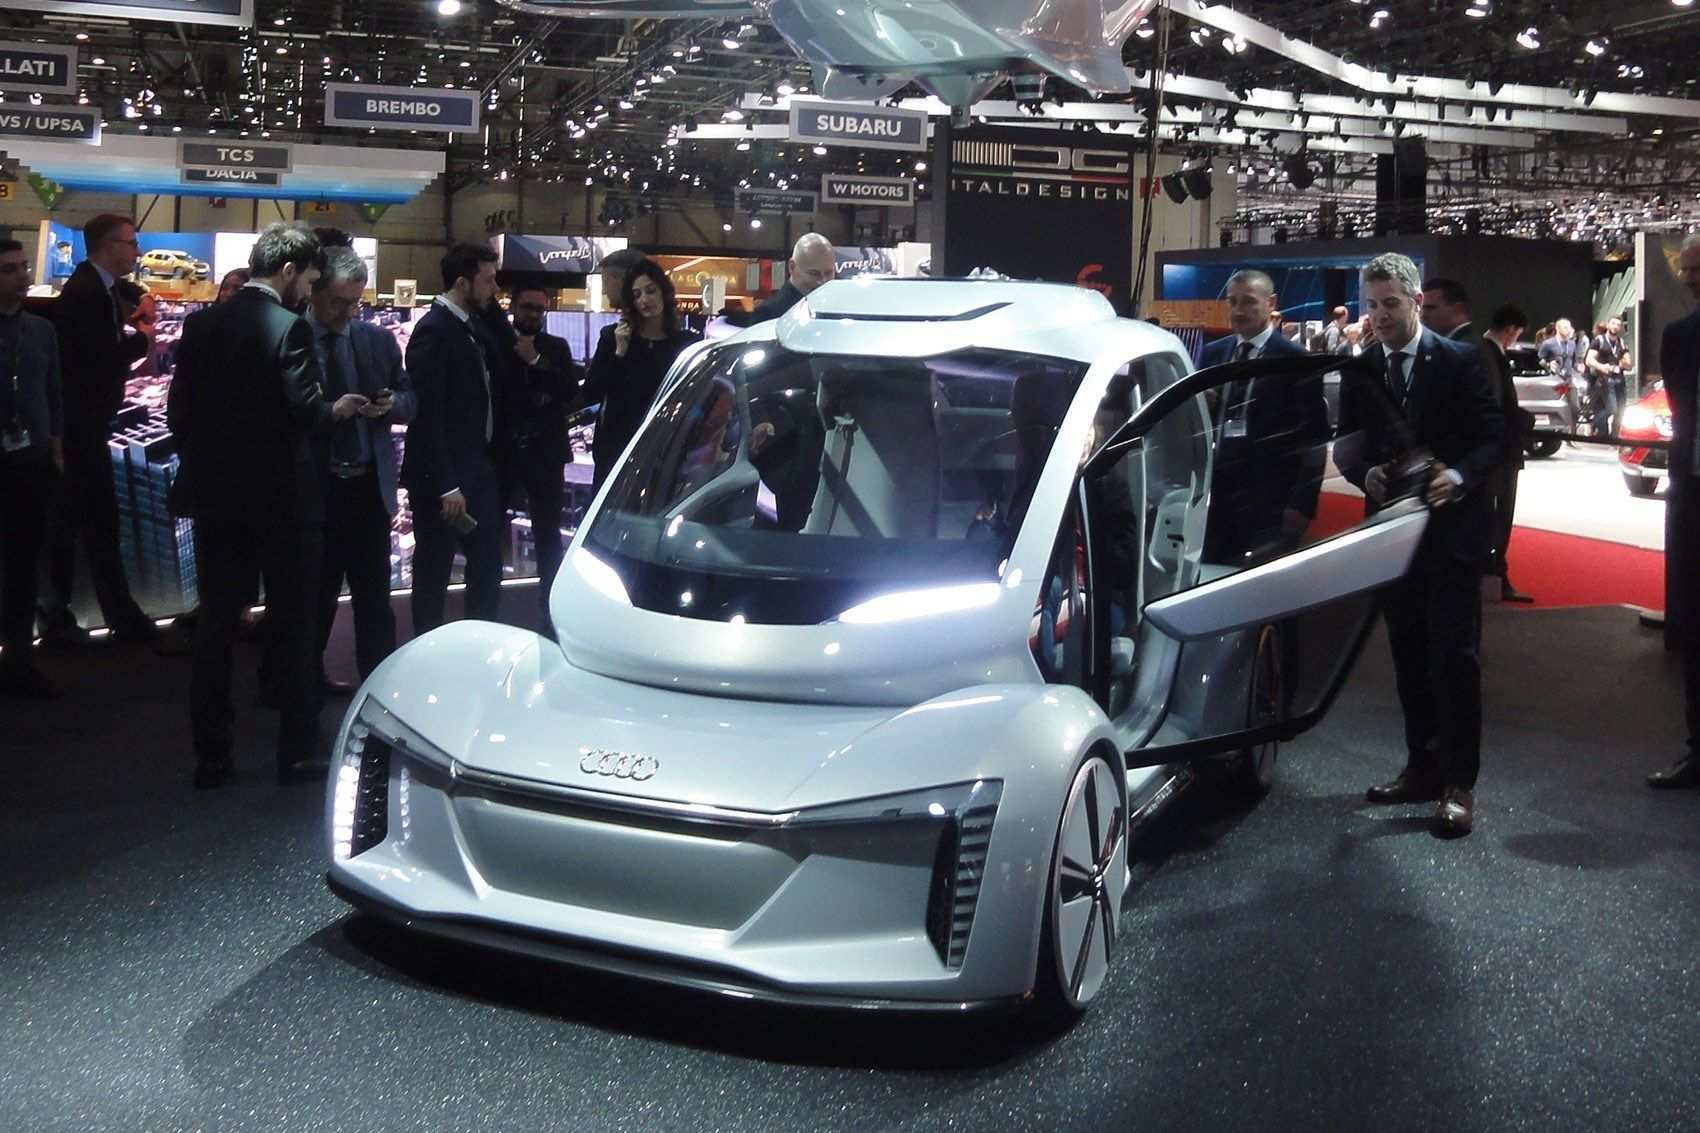 56 Best Review The Volvo Flying Car 2019 Engine Wallpaper with The Volvo Flying Car 2019 Engine